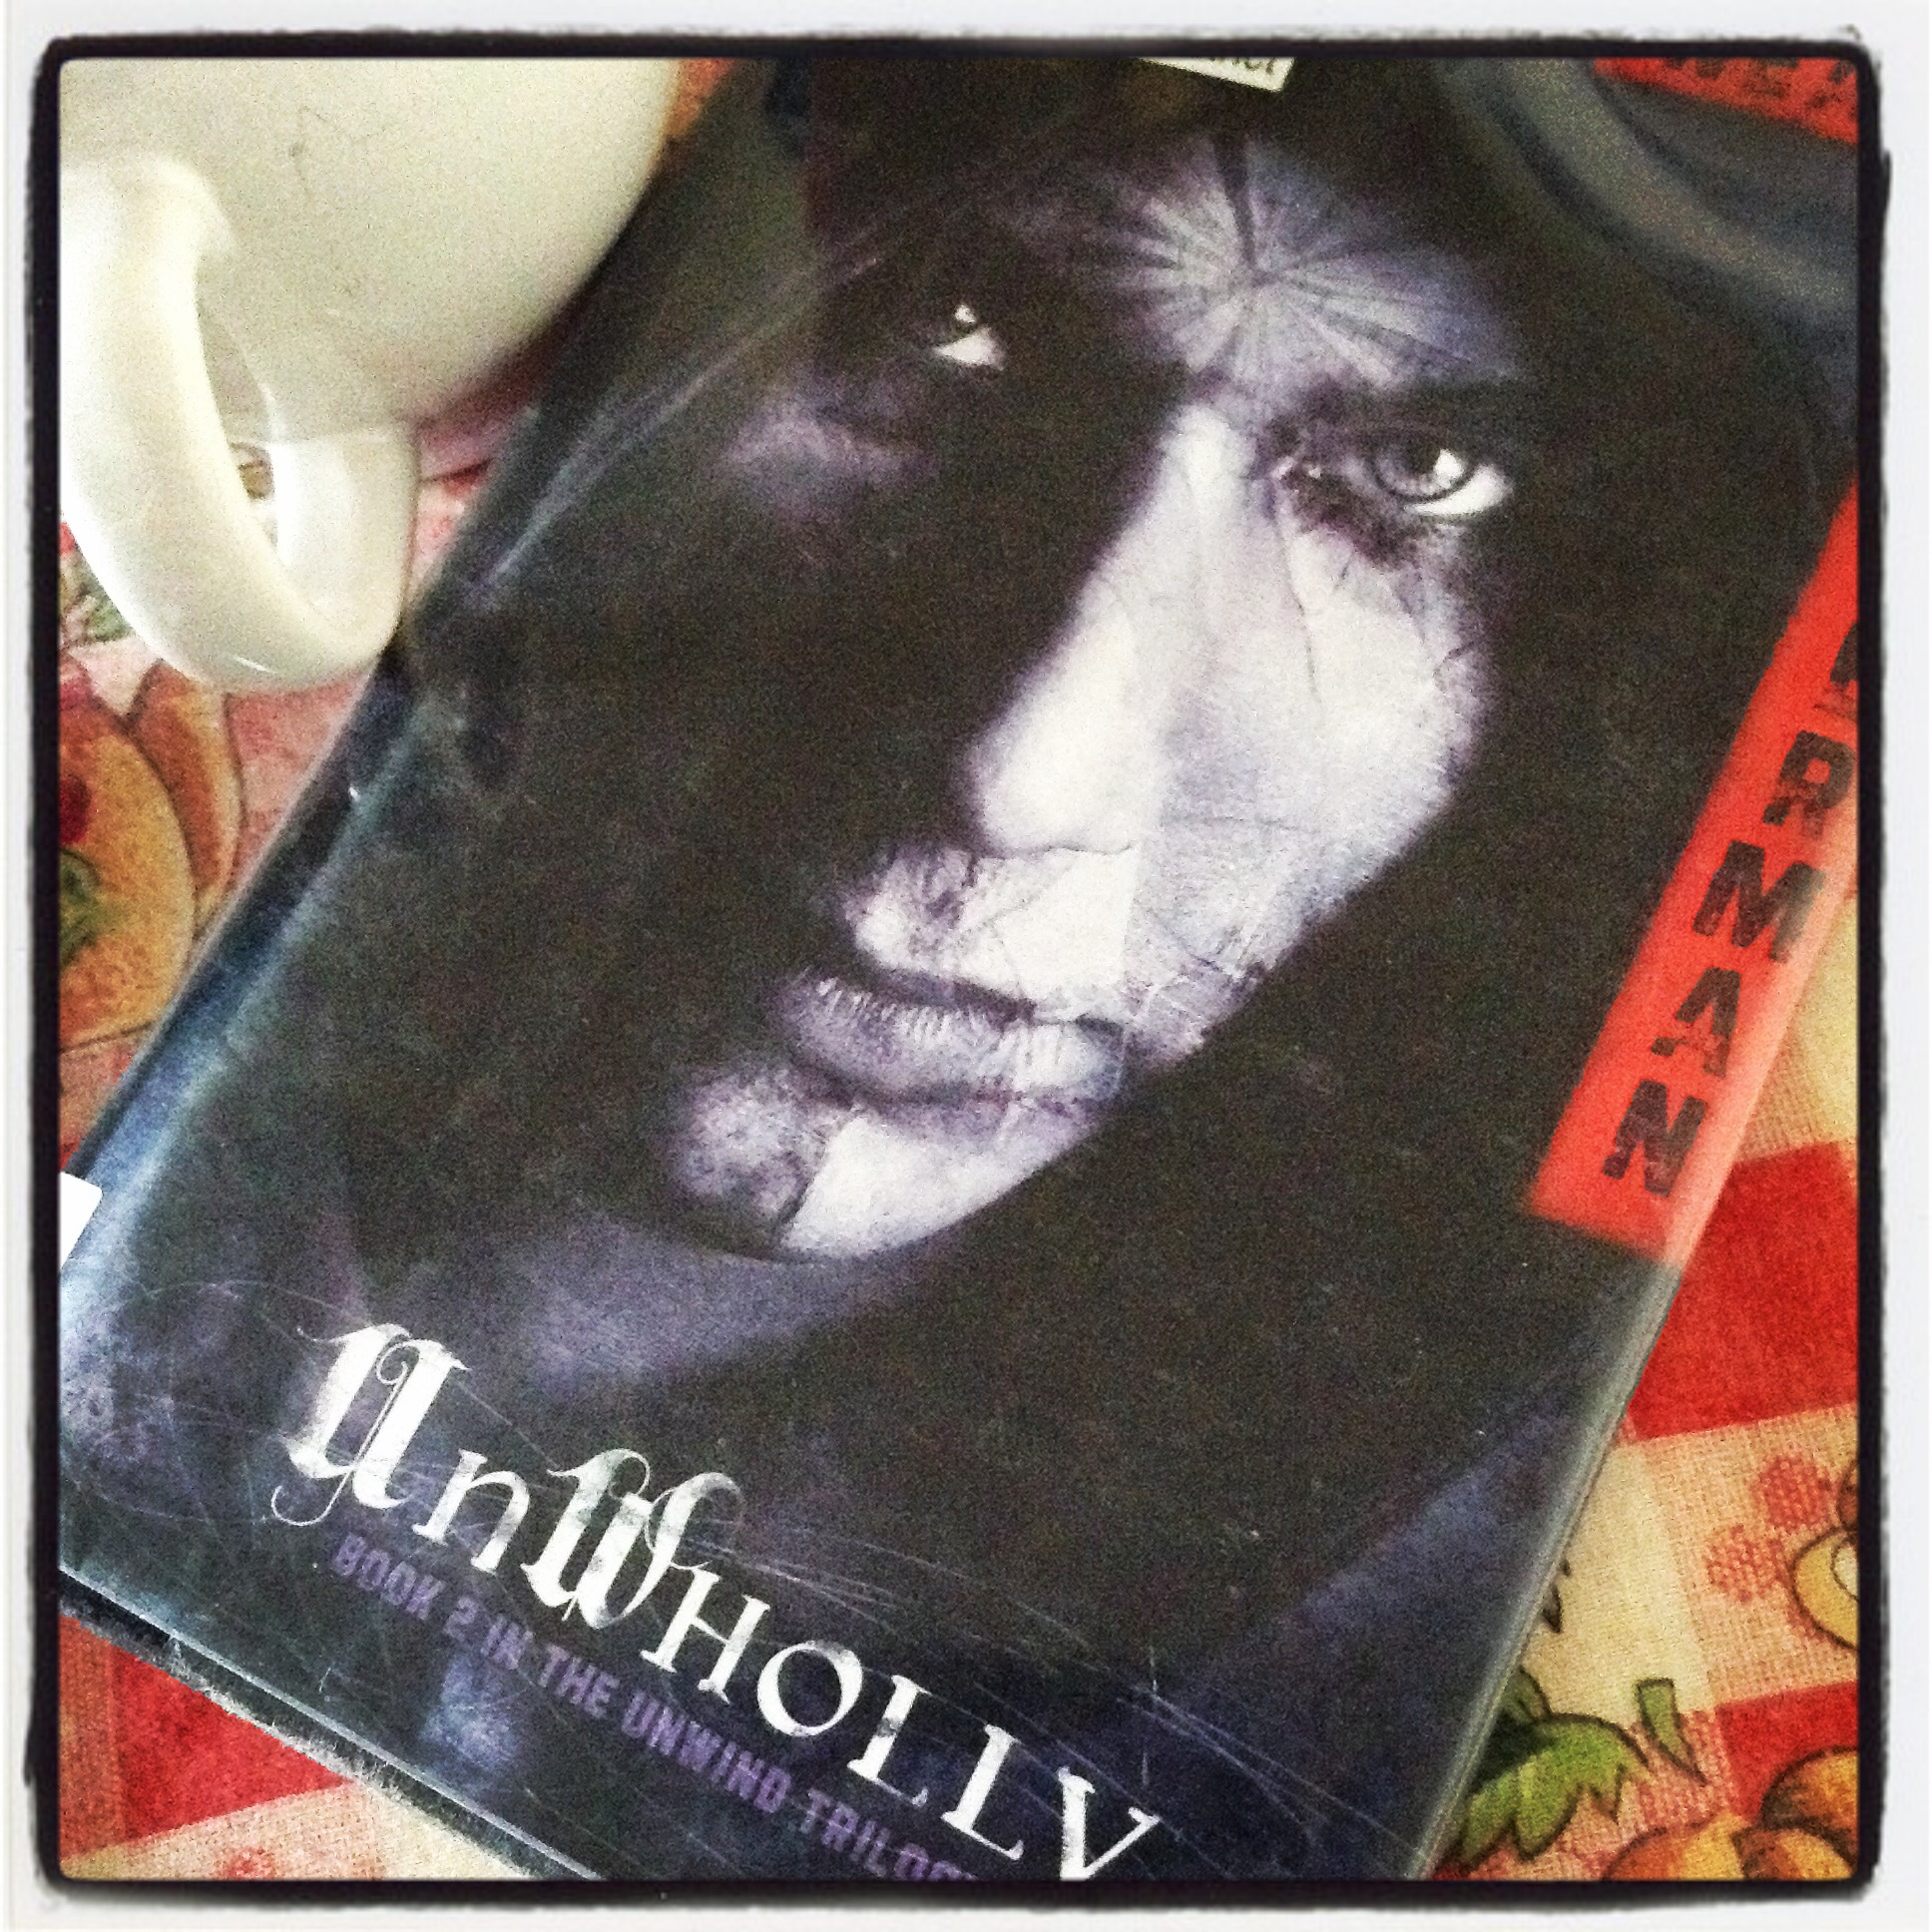 After Finishing Unwind By Neil Shusterman, I Had No Choice But To Pick Up  The Second Novel In The Series Unwholly Picks Up Where The Preceding Story  Left